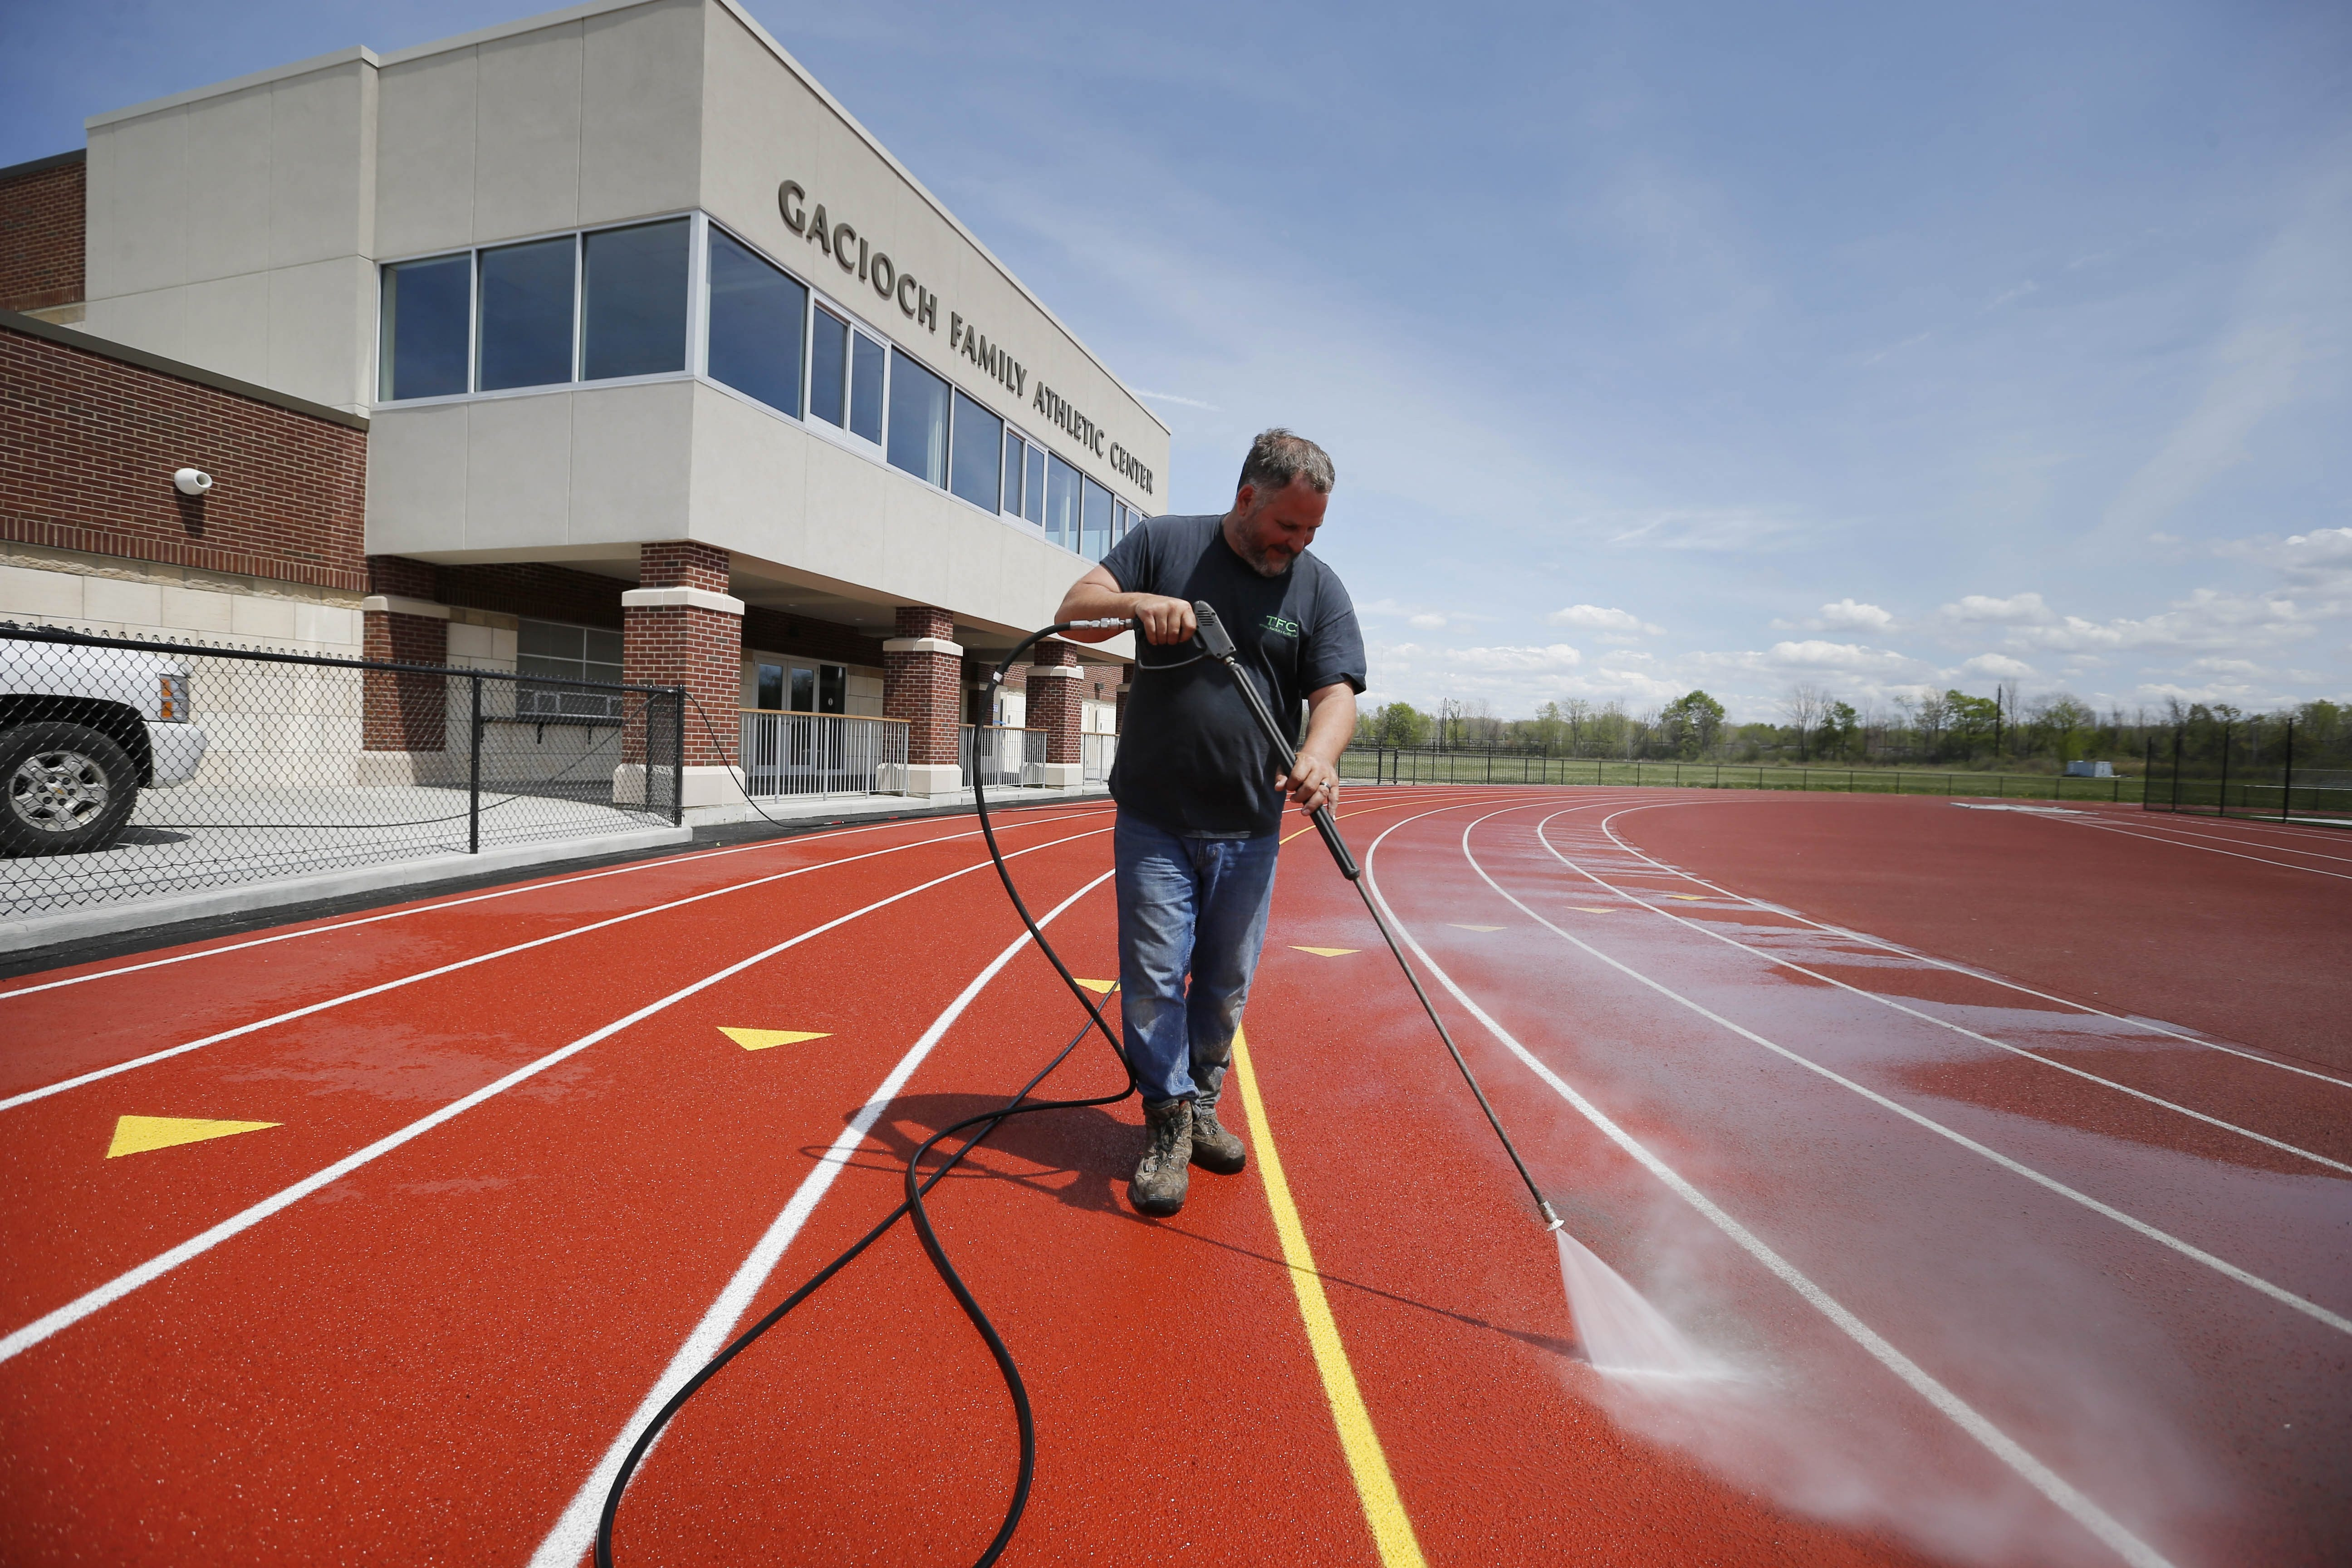 Gary Chase of Total Facility Care powerwashes the track at the new athletic complex at St. Francis High School on Thursday.